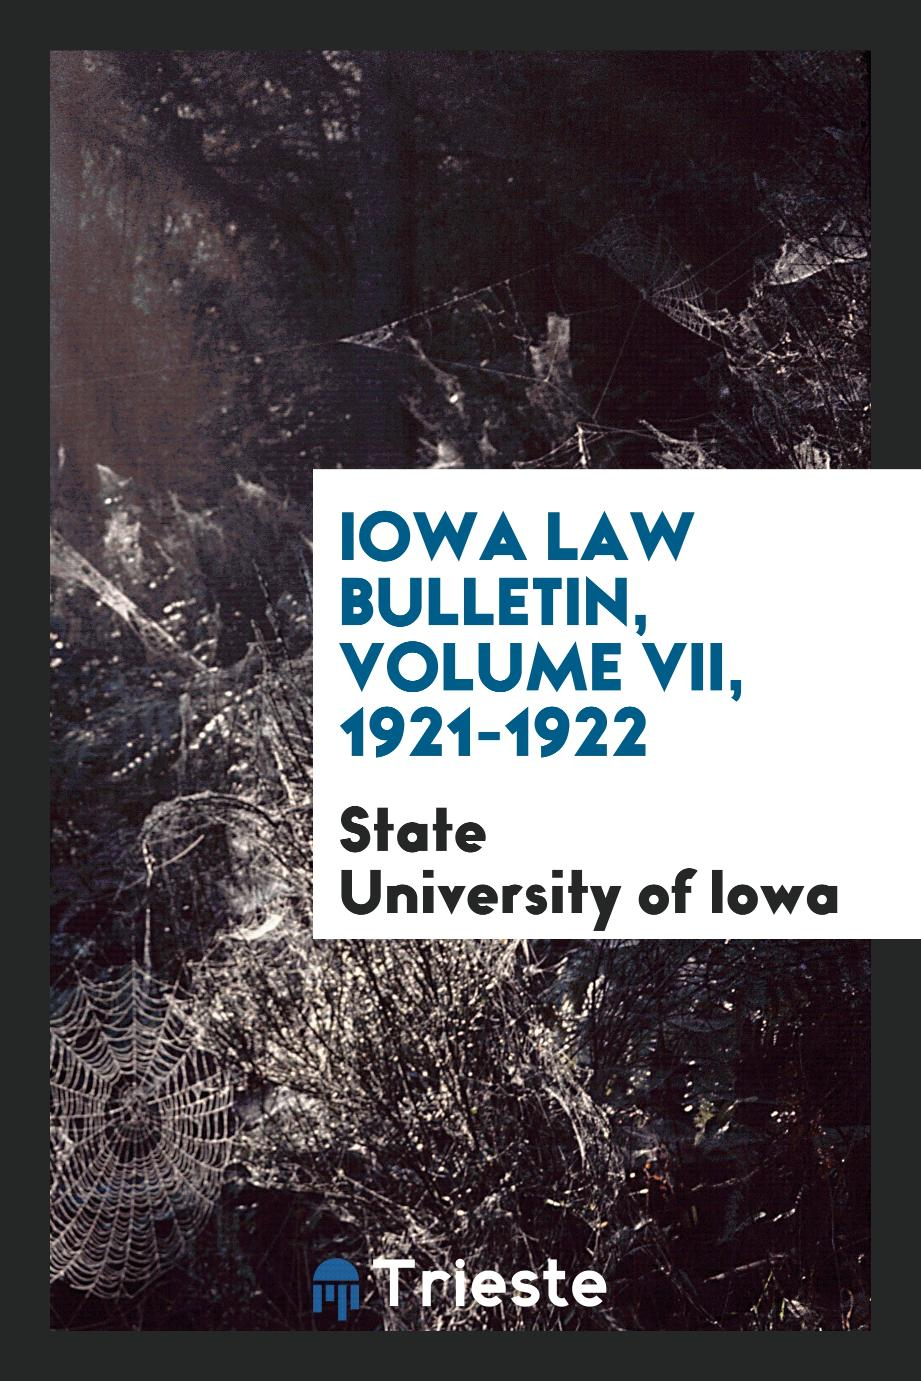 Iowa Law Bulletin, Volume VII, 1921-1922